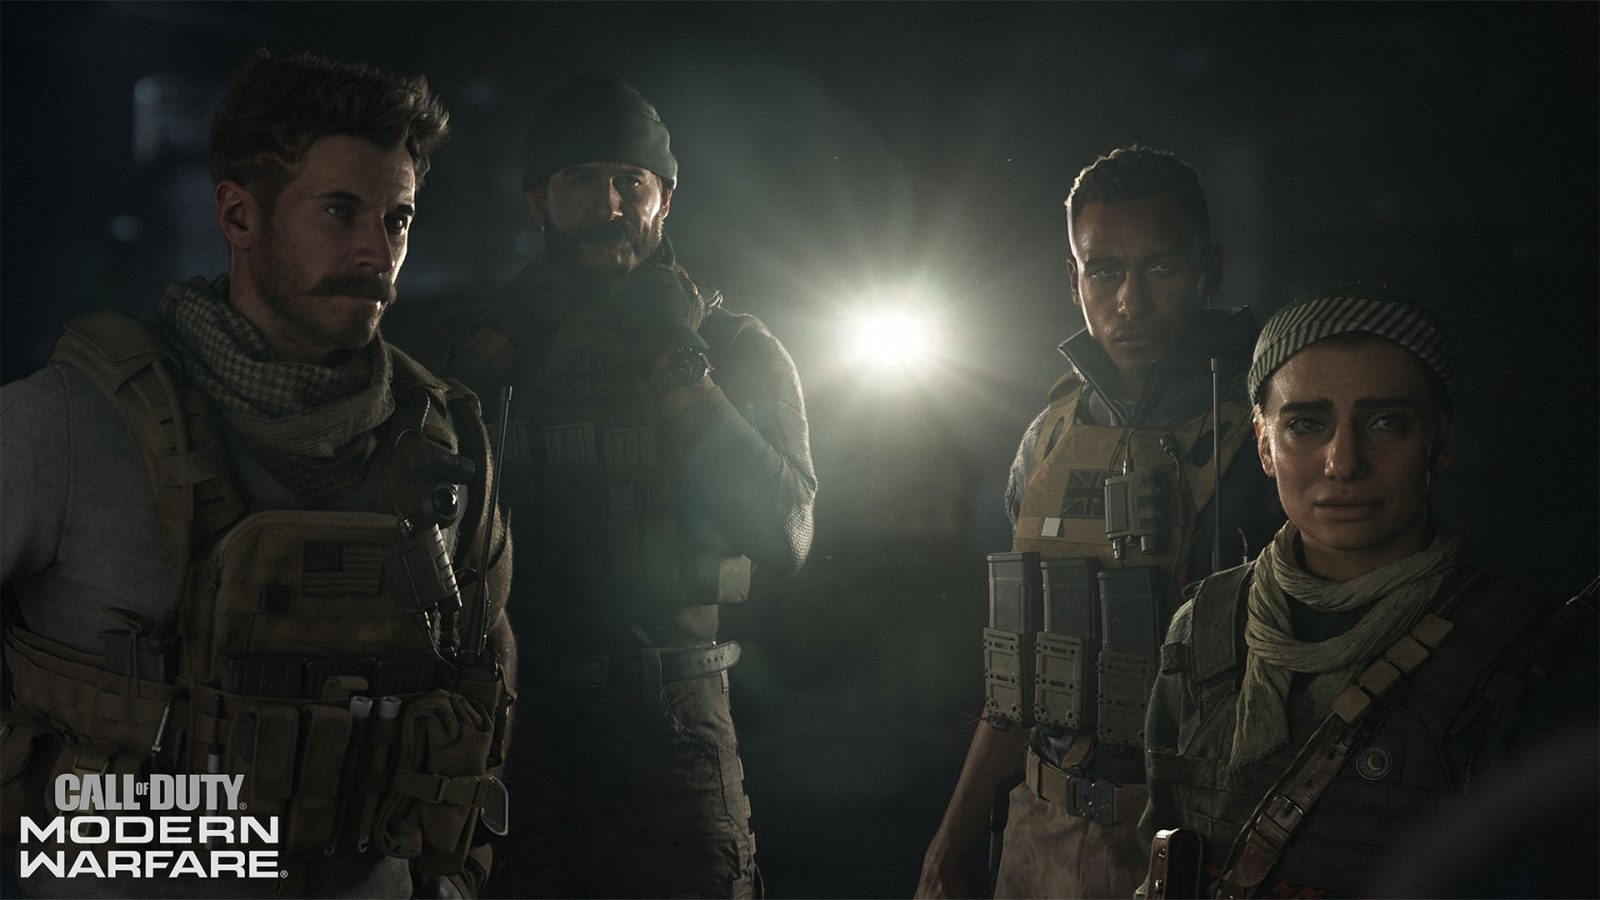 Call of Duty Modern Warfare launches Friday, here's how to get the best deal